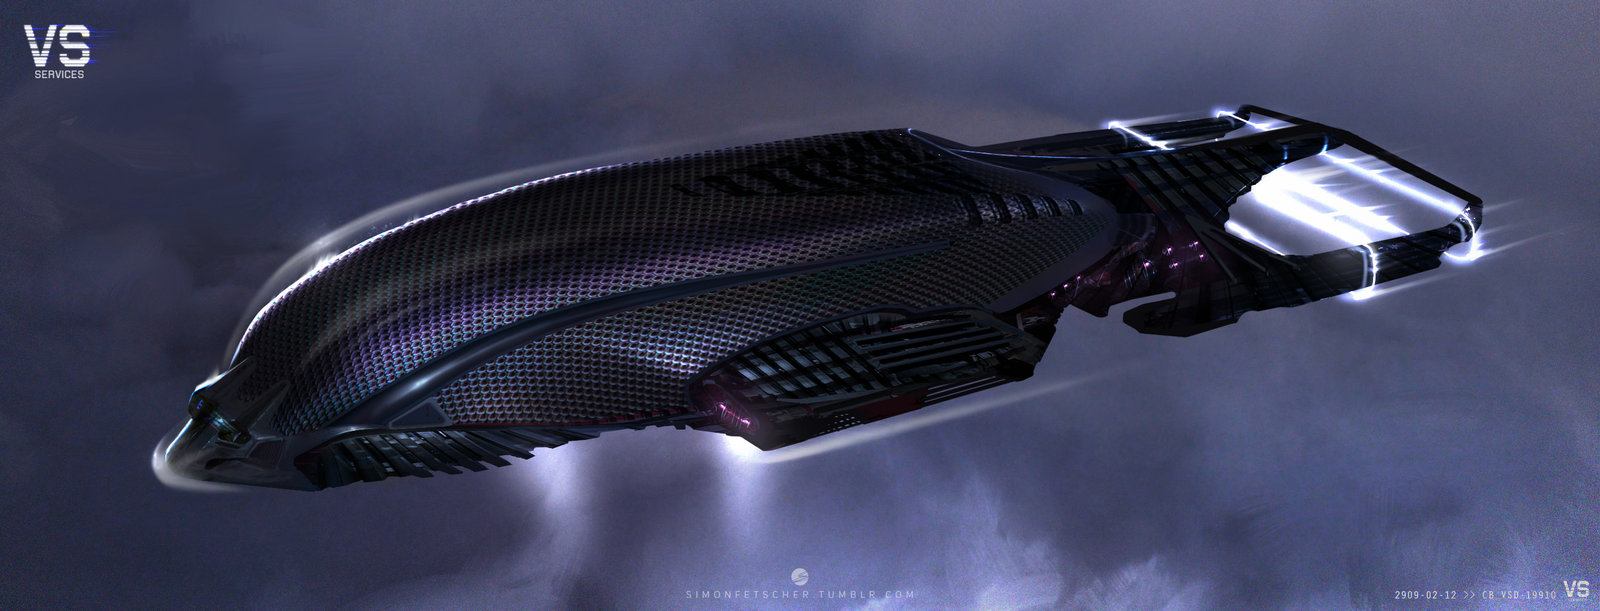 Spaceship in the clouds 2